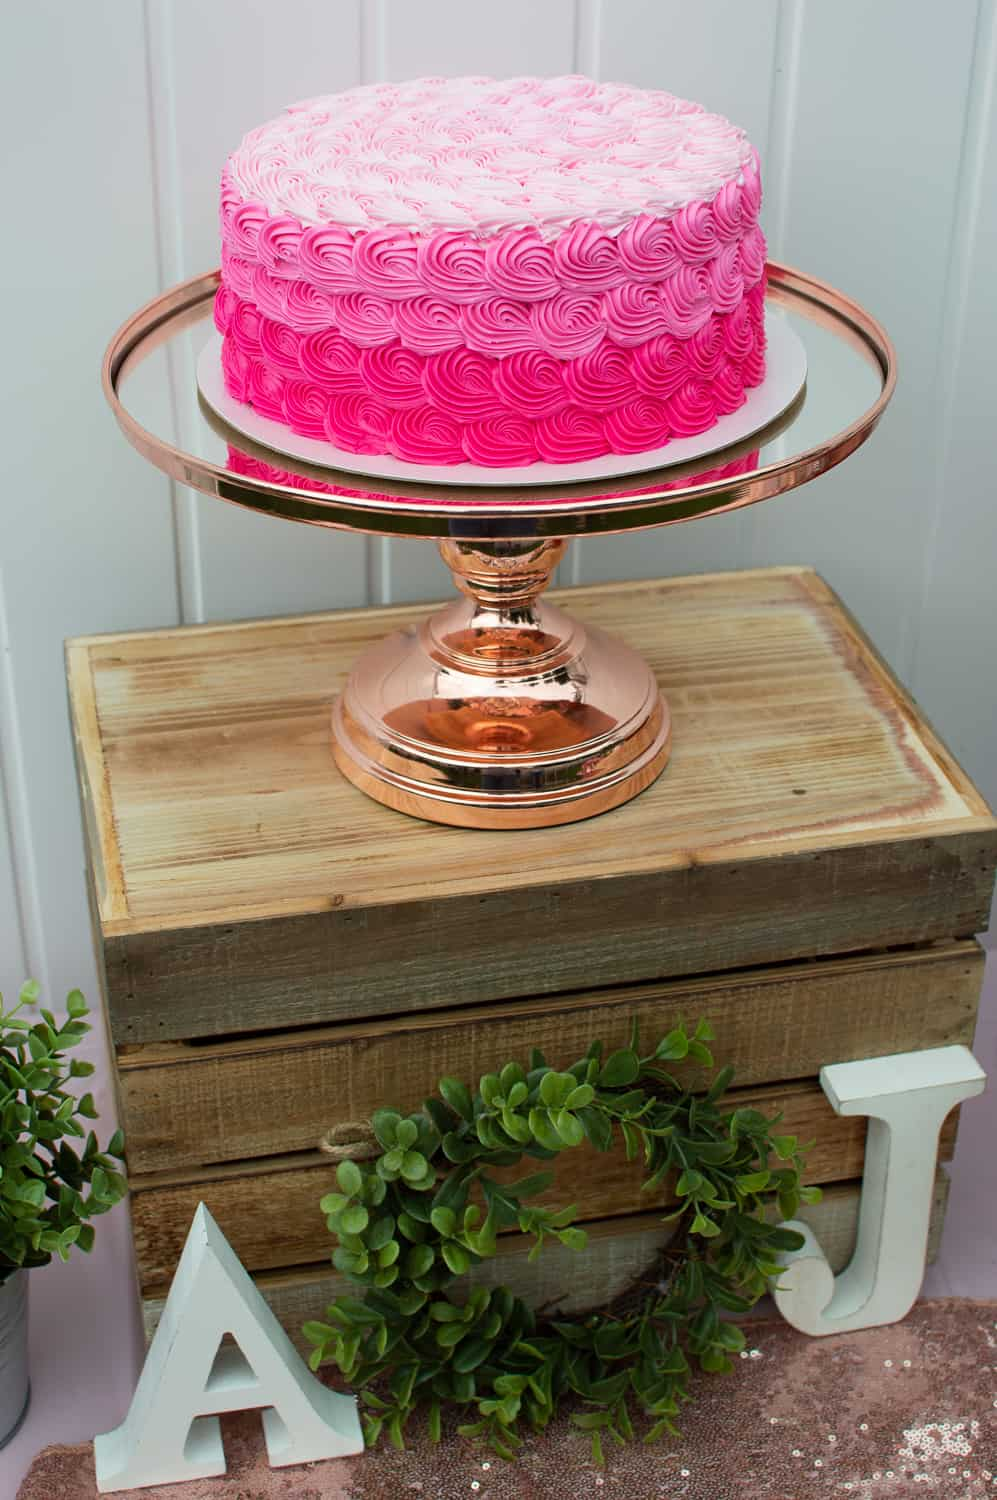 Amalfi Decor Rose Gold Cake Stand with pink rosette cake